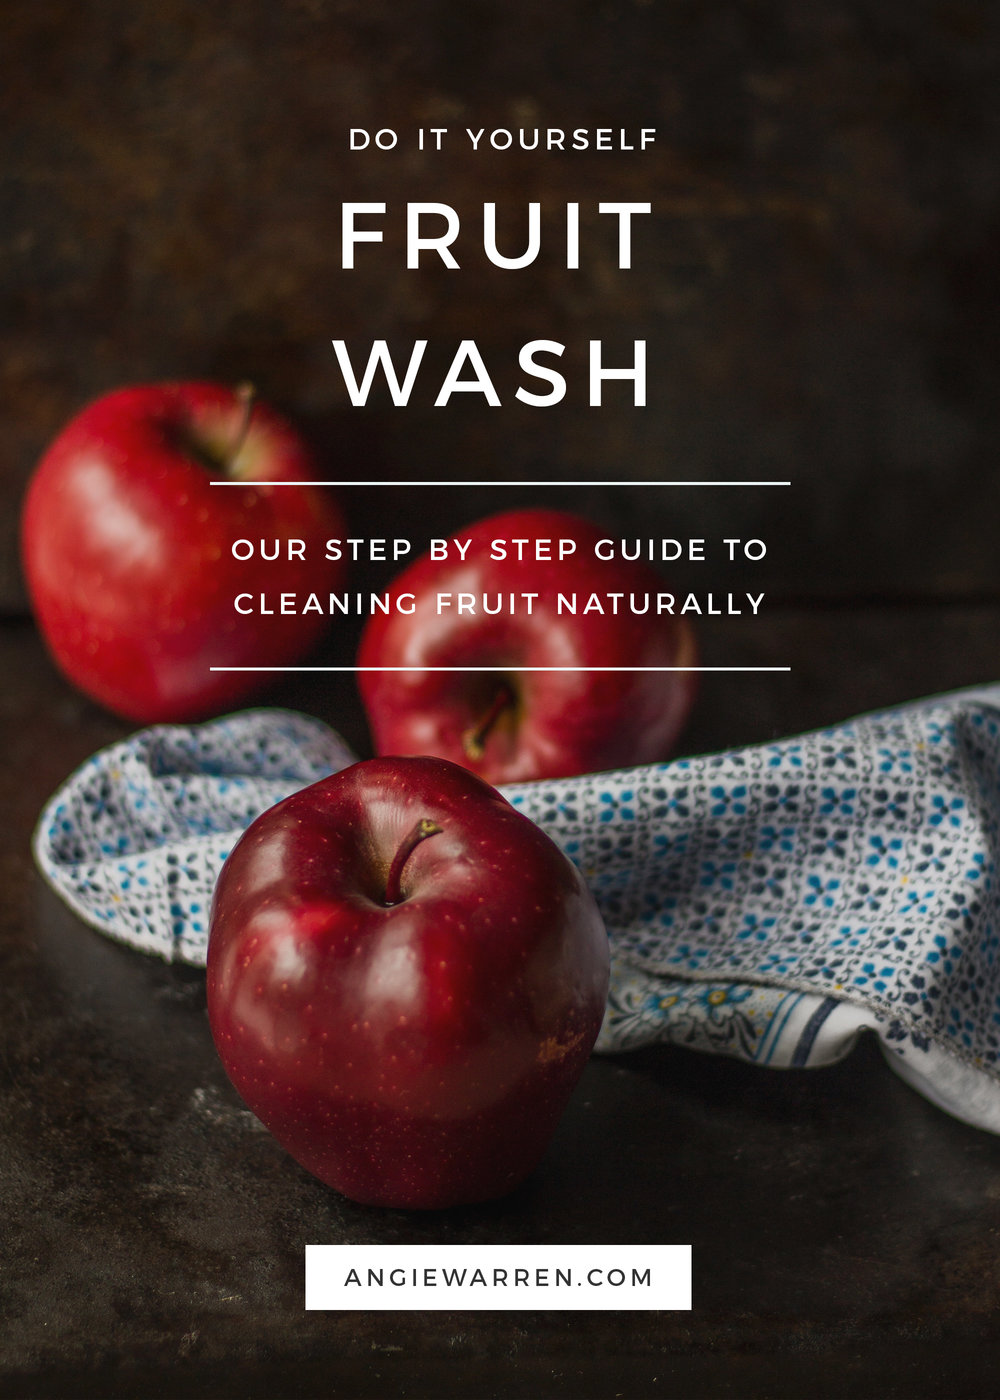 DIY NATURAL FRUIT CLEANER | www.angiewarren.com